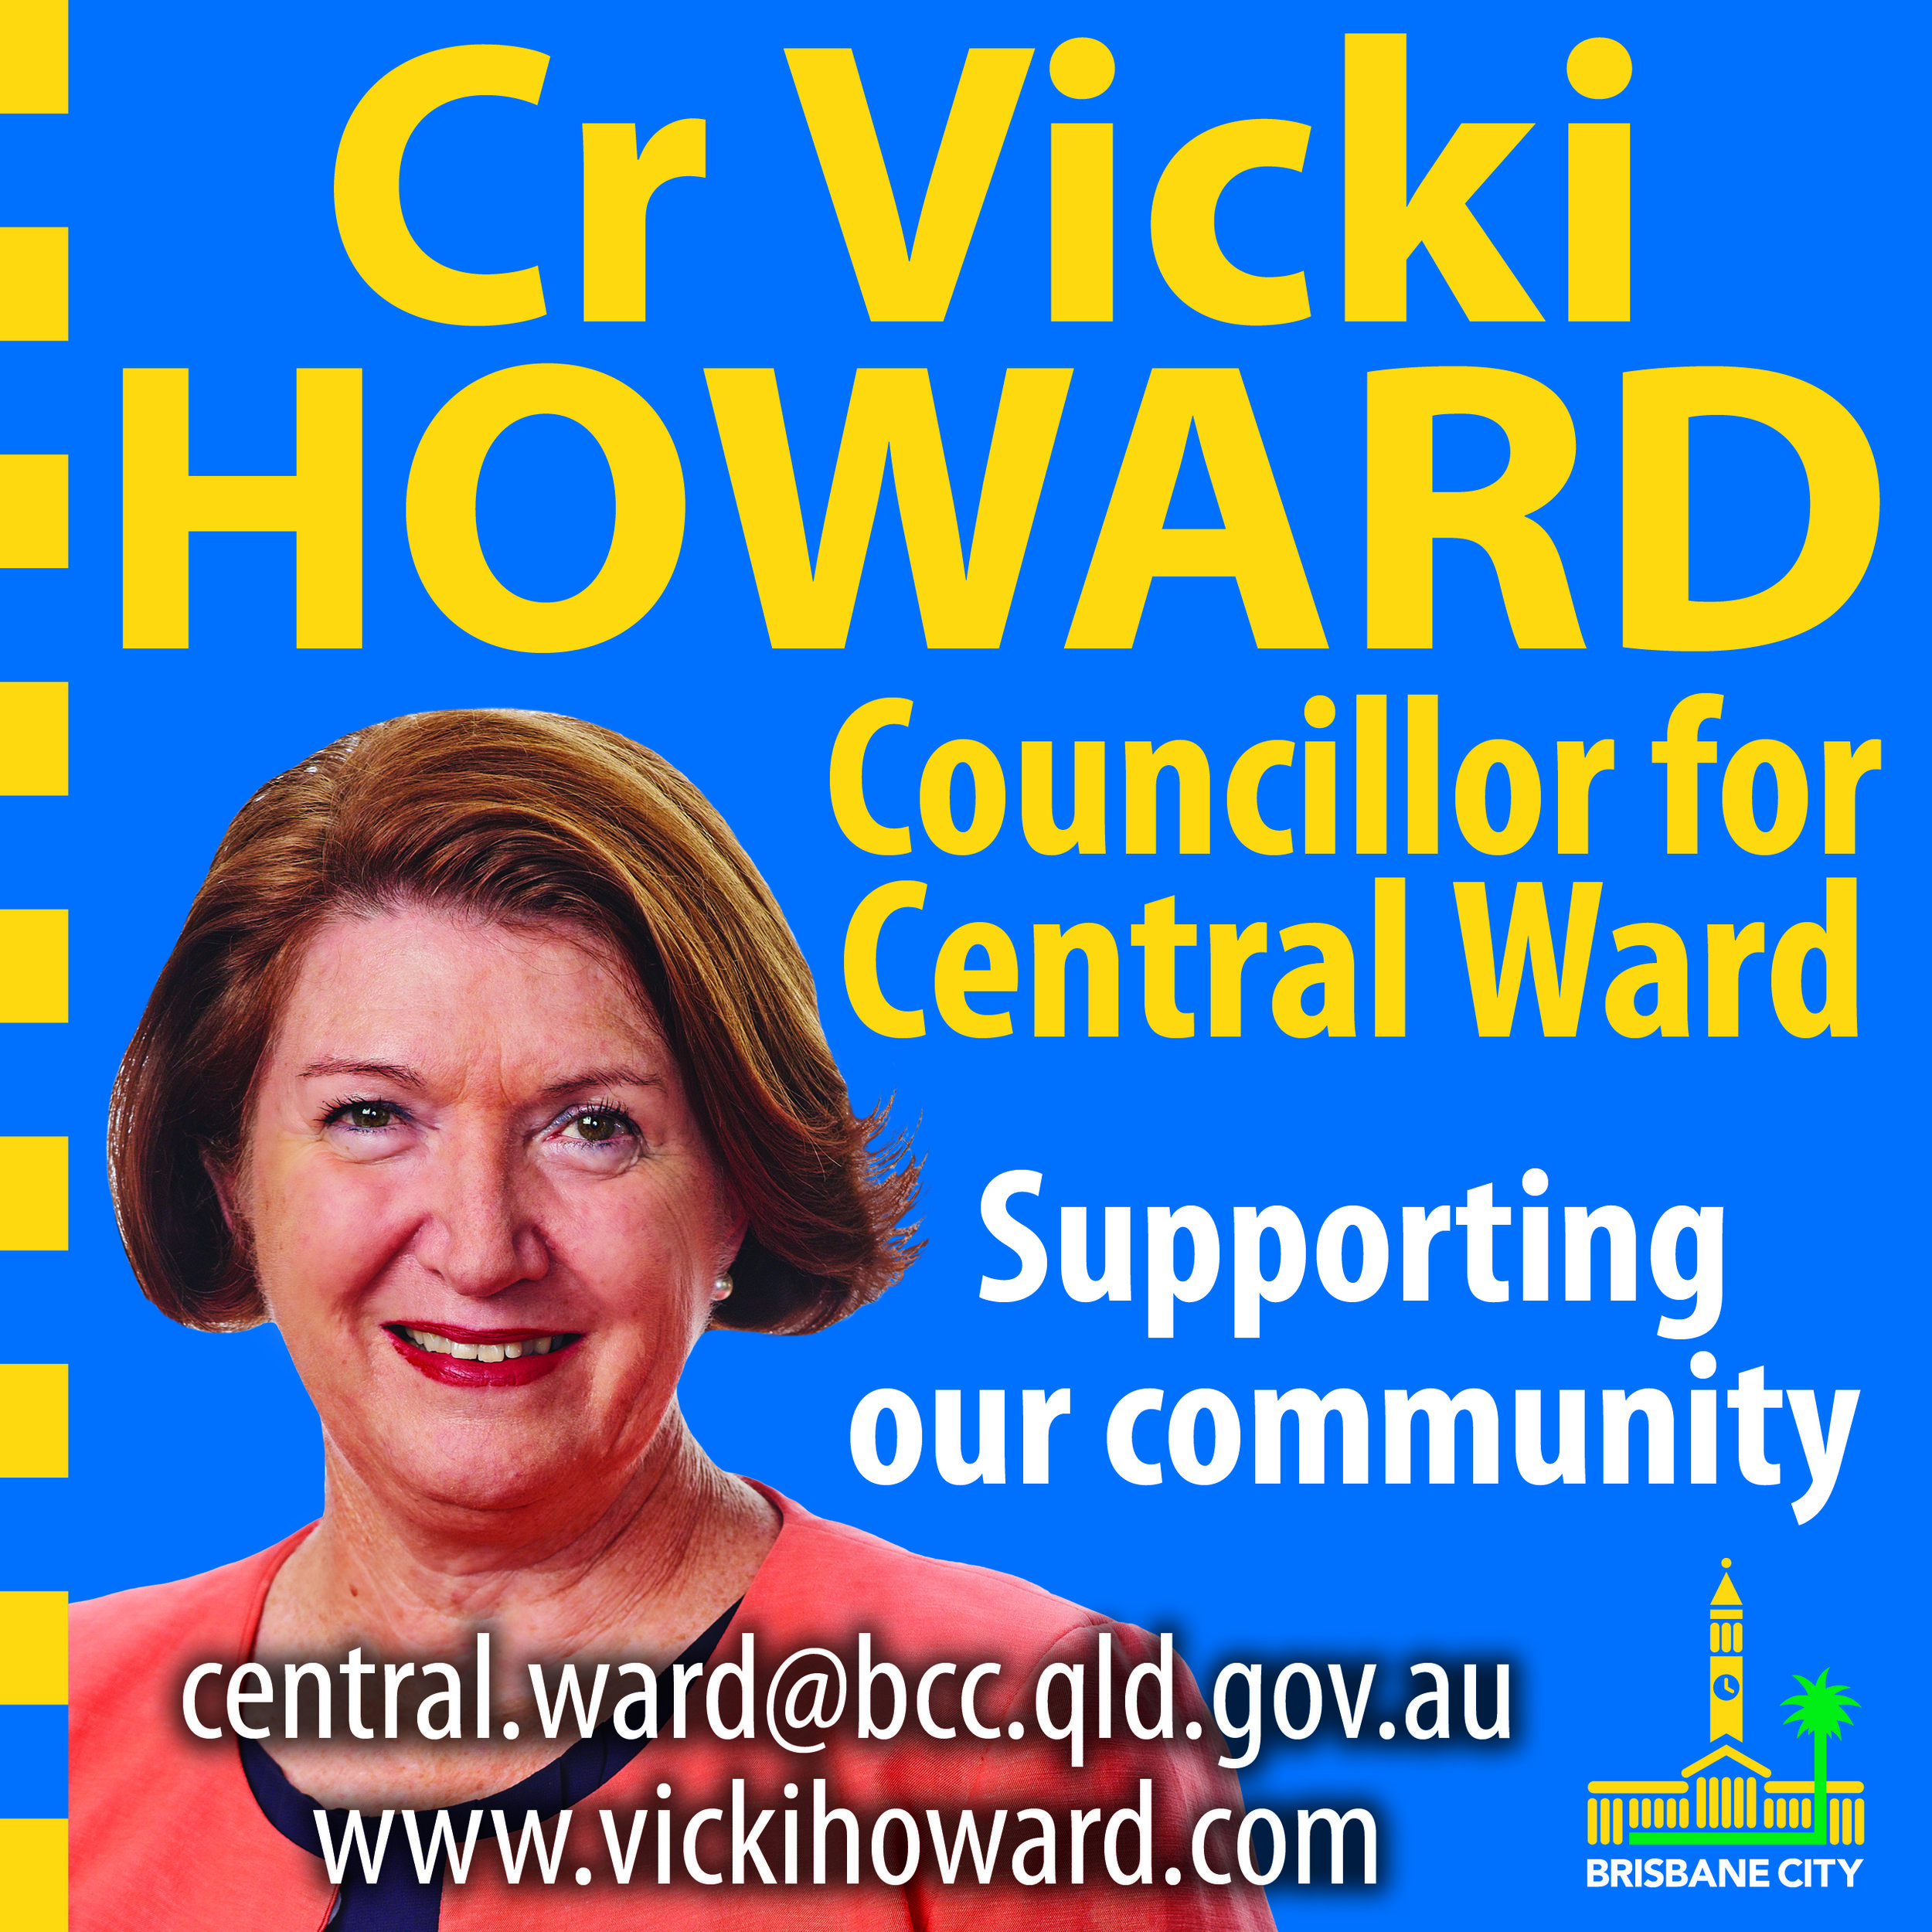 Cr Howard supporting our community 2016 LOGO.JPG